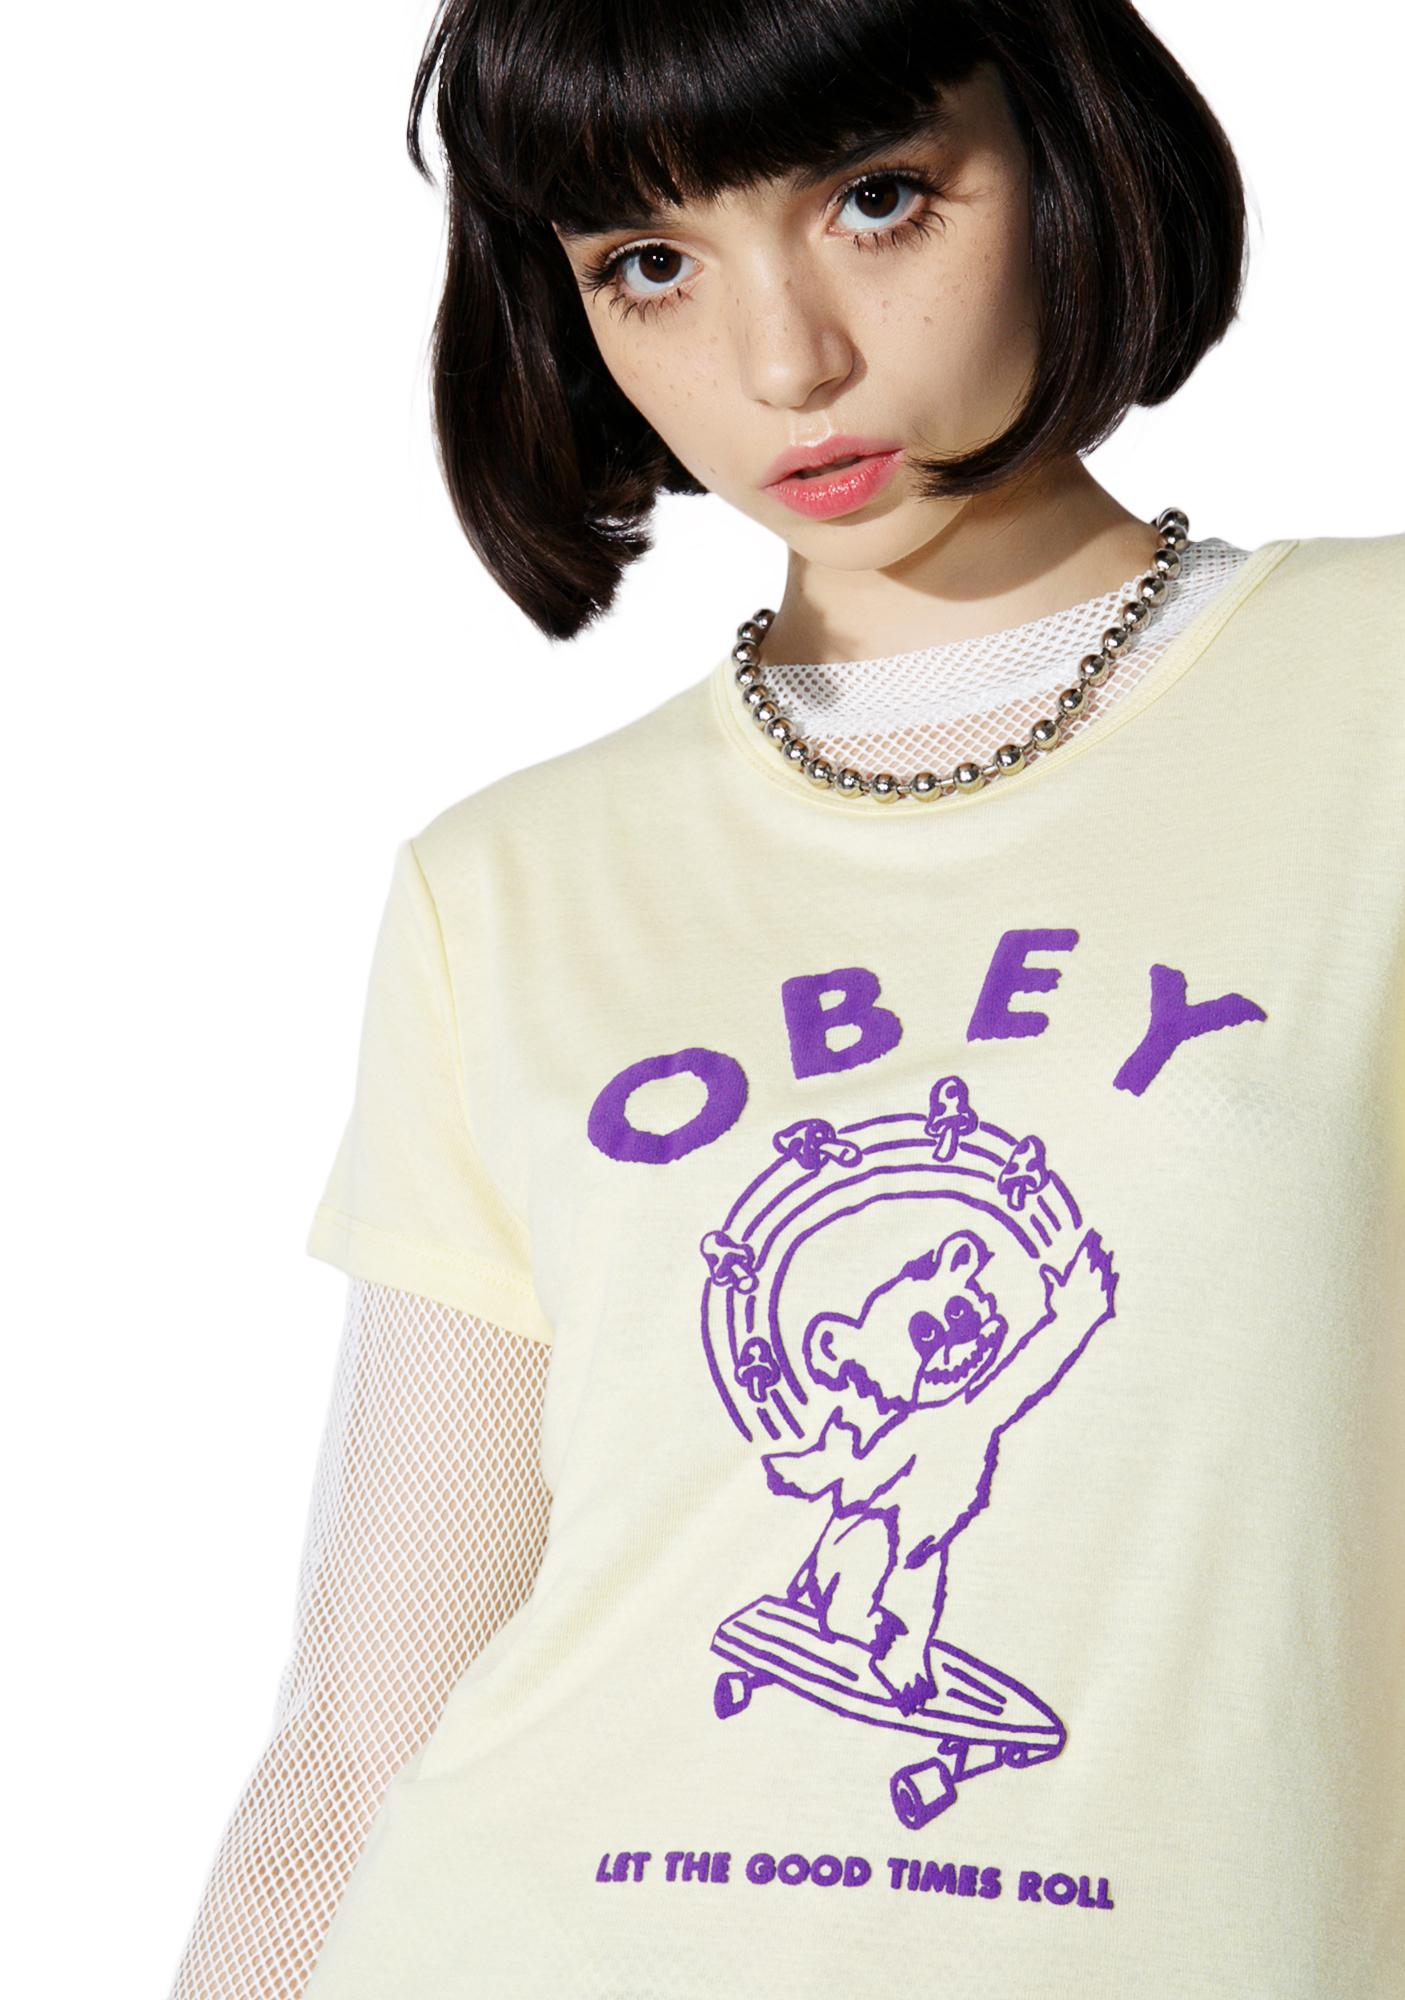 Obey Let The Good Times Roll Babydoll Tee